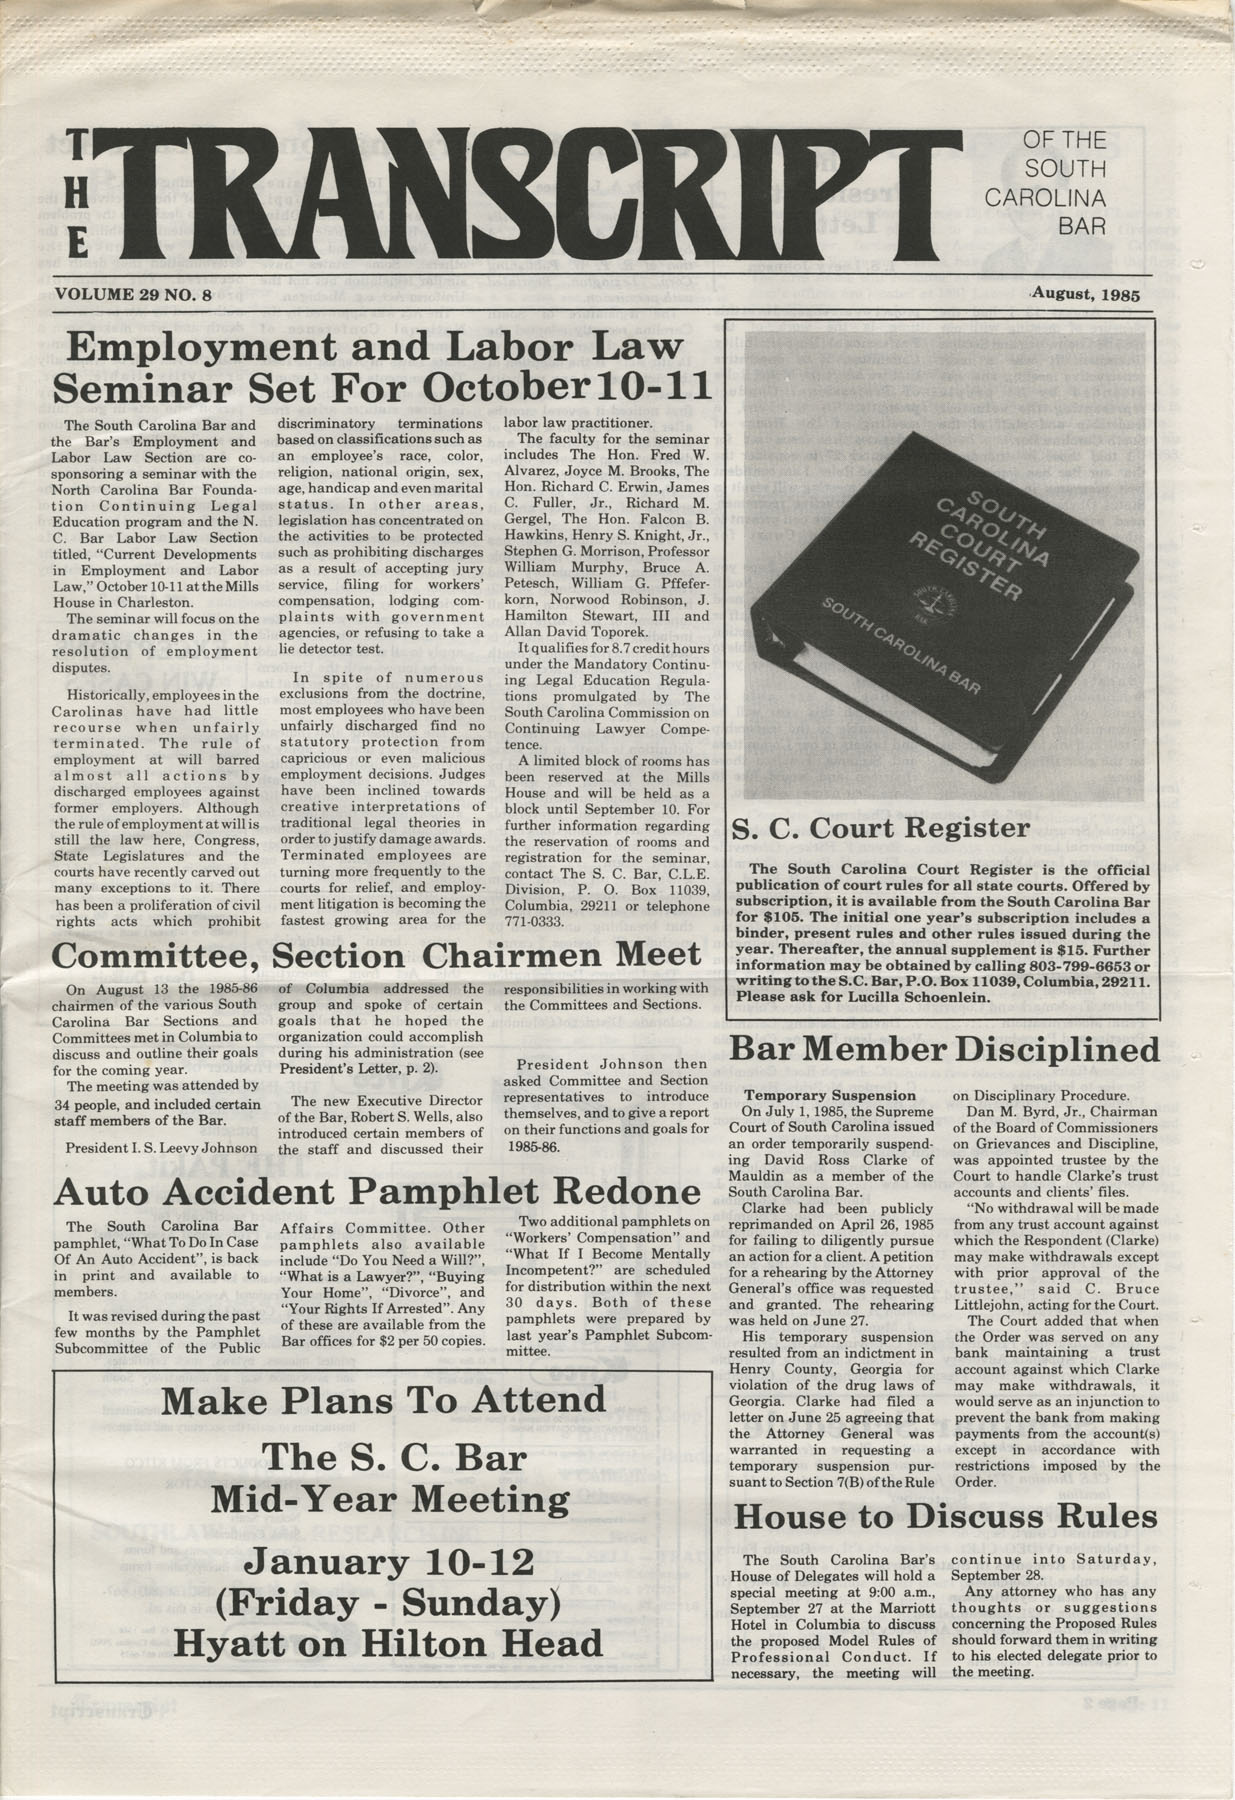 The Transcript of the South Carolina Bar, Vol. 29 No. 8, August 1985, Page 1